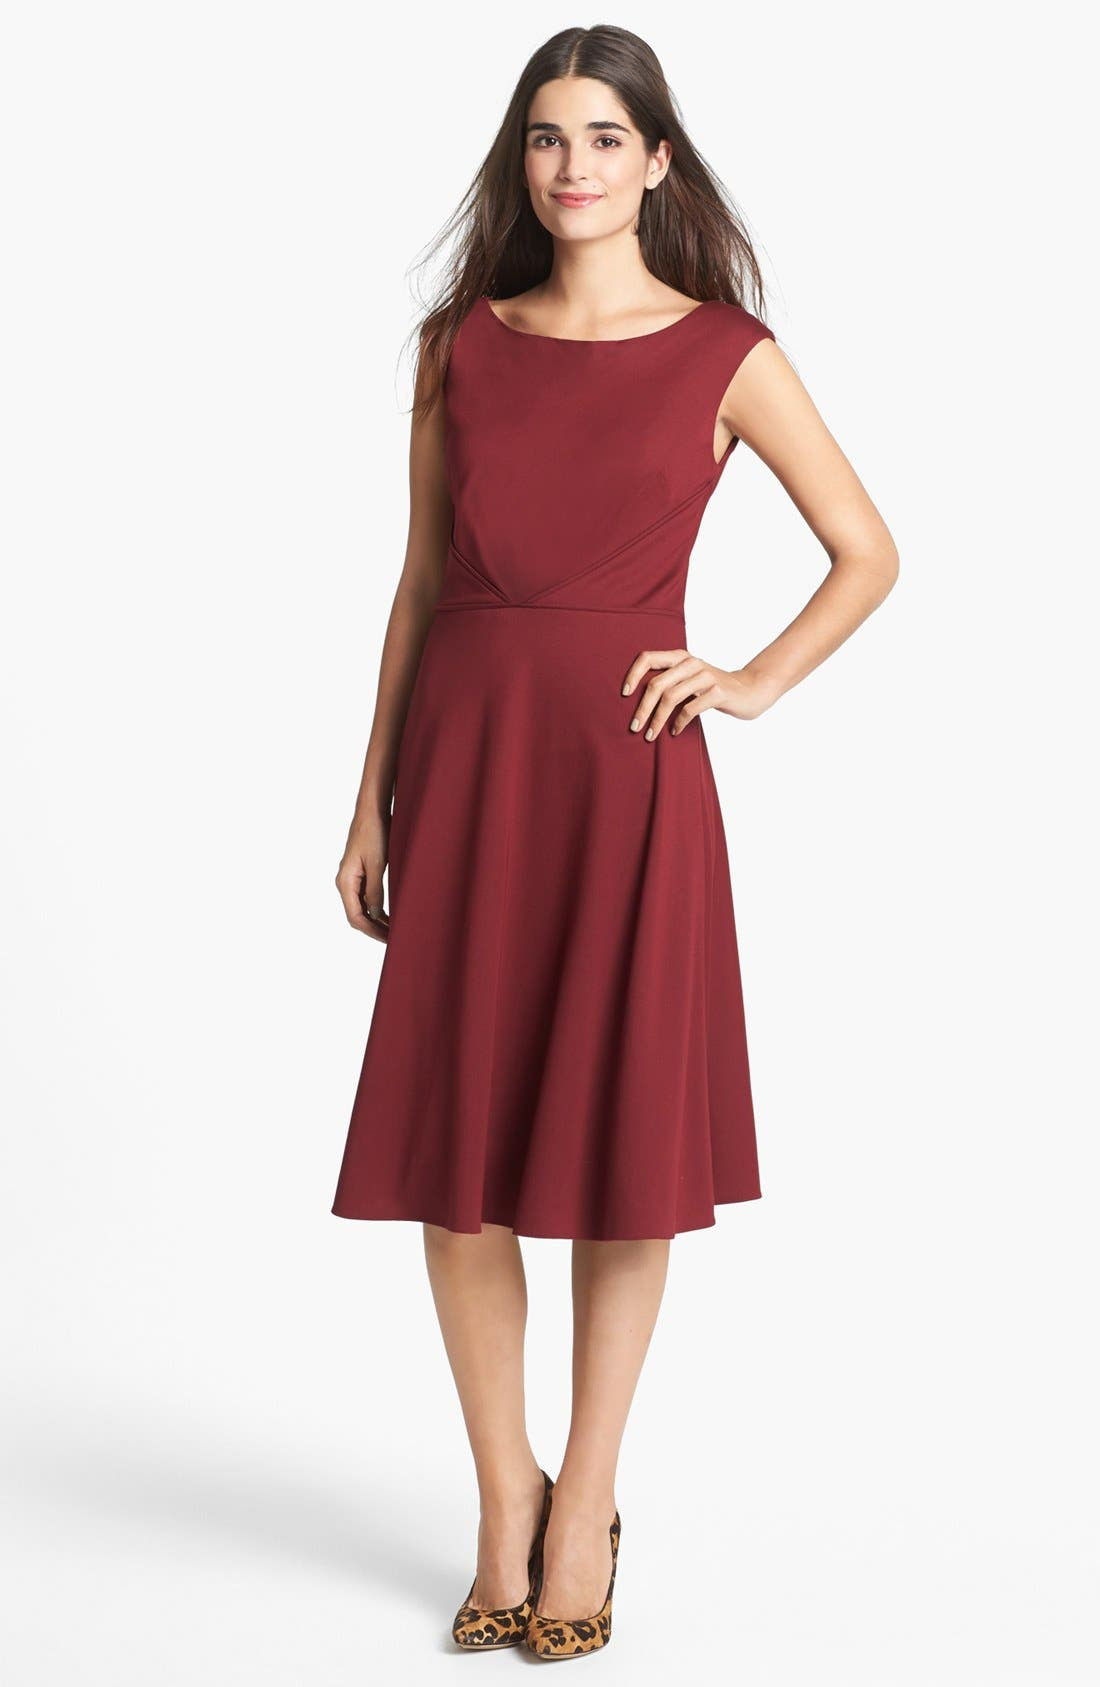 Alternate Image 1 Selected - Adrianna Papell Ponte Knit Fit & Flare Dress